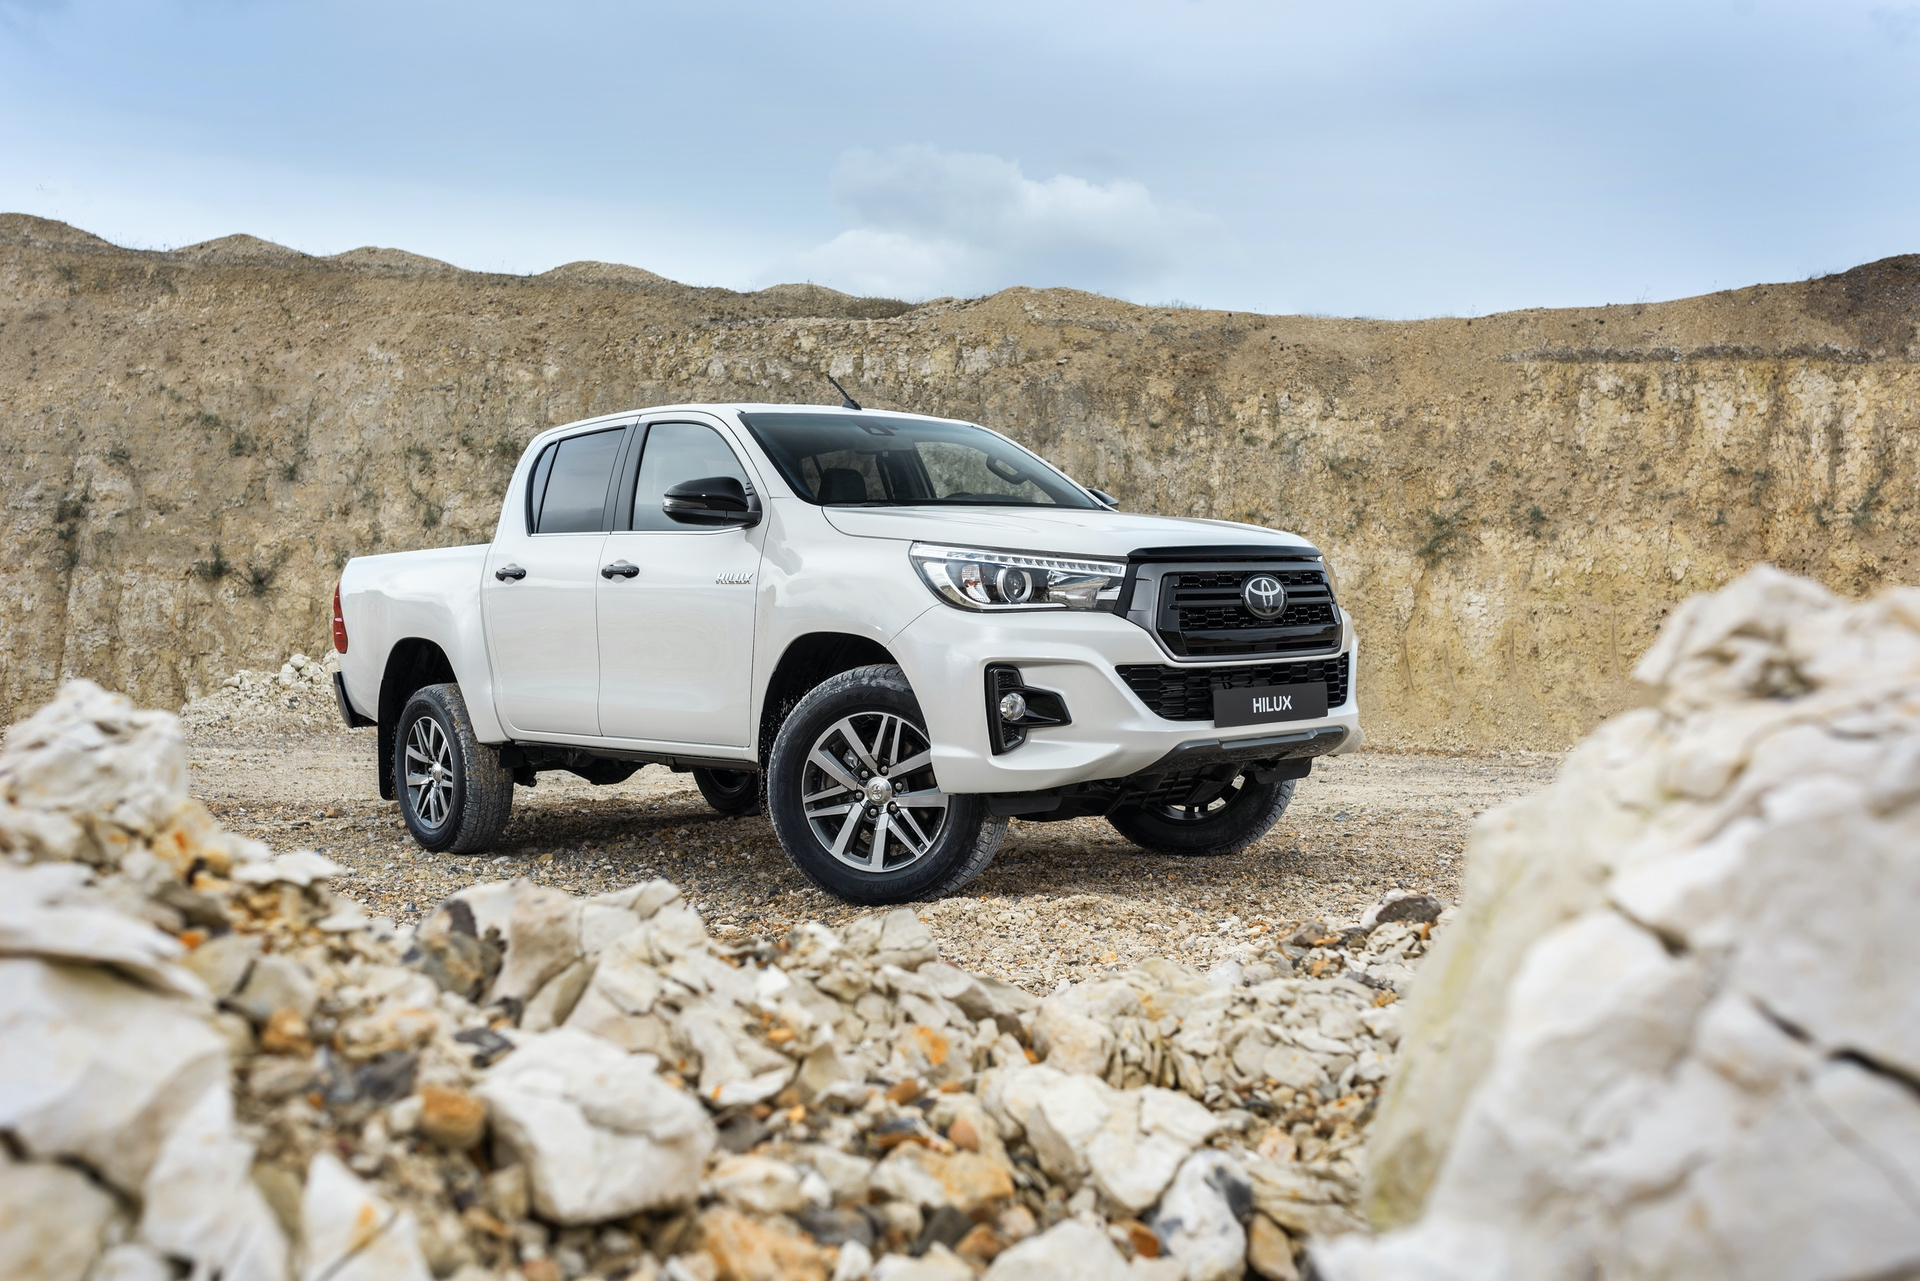 Toyota_Hilux_Special_Edition_0061